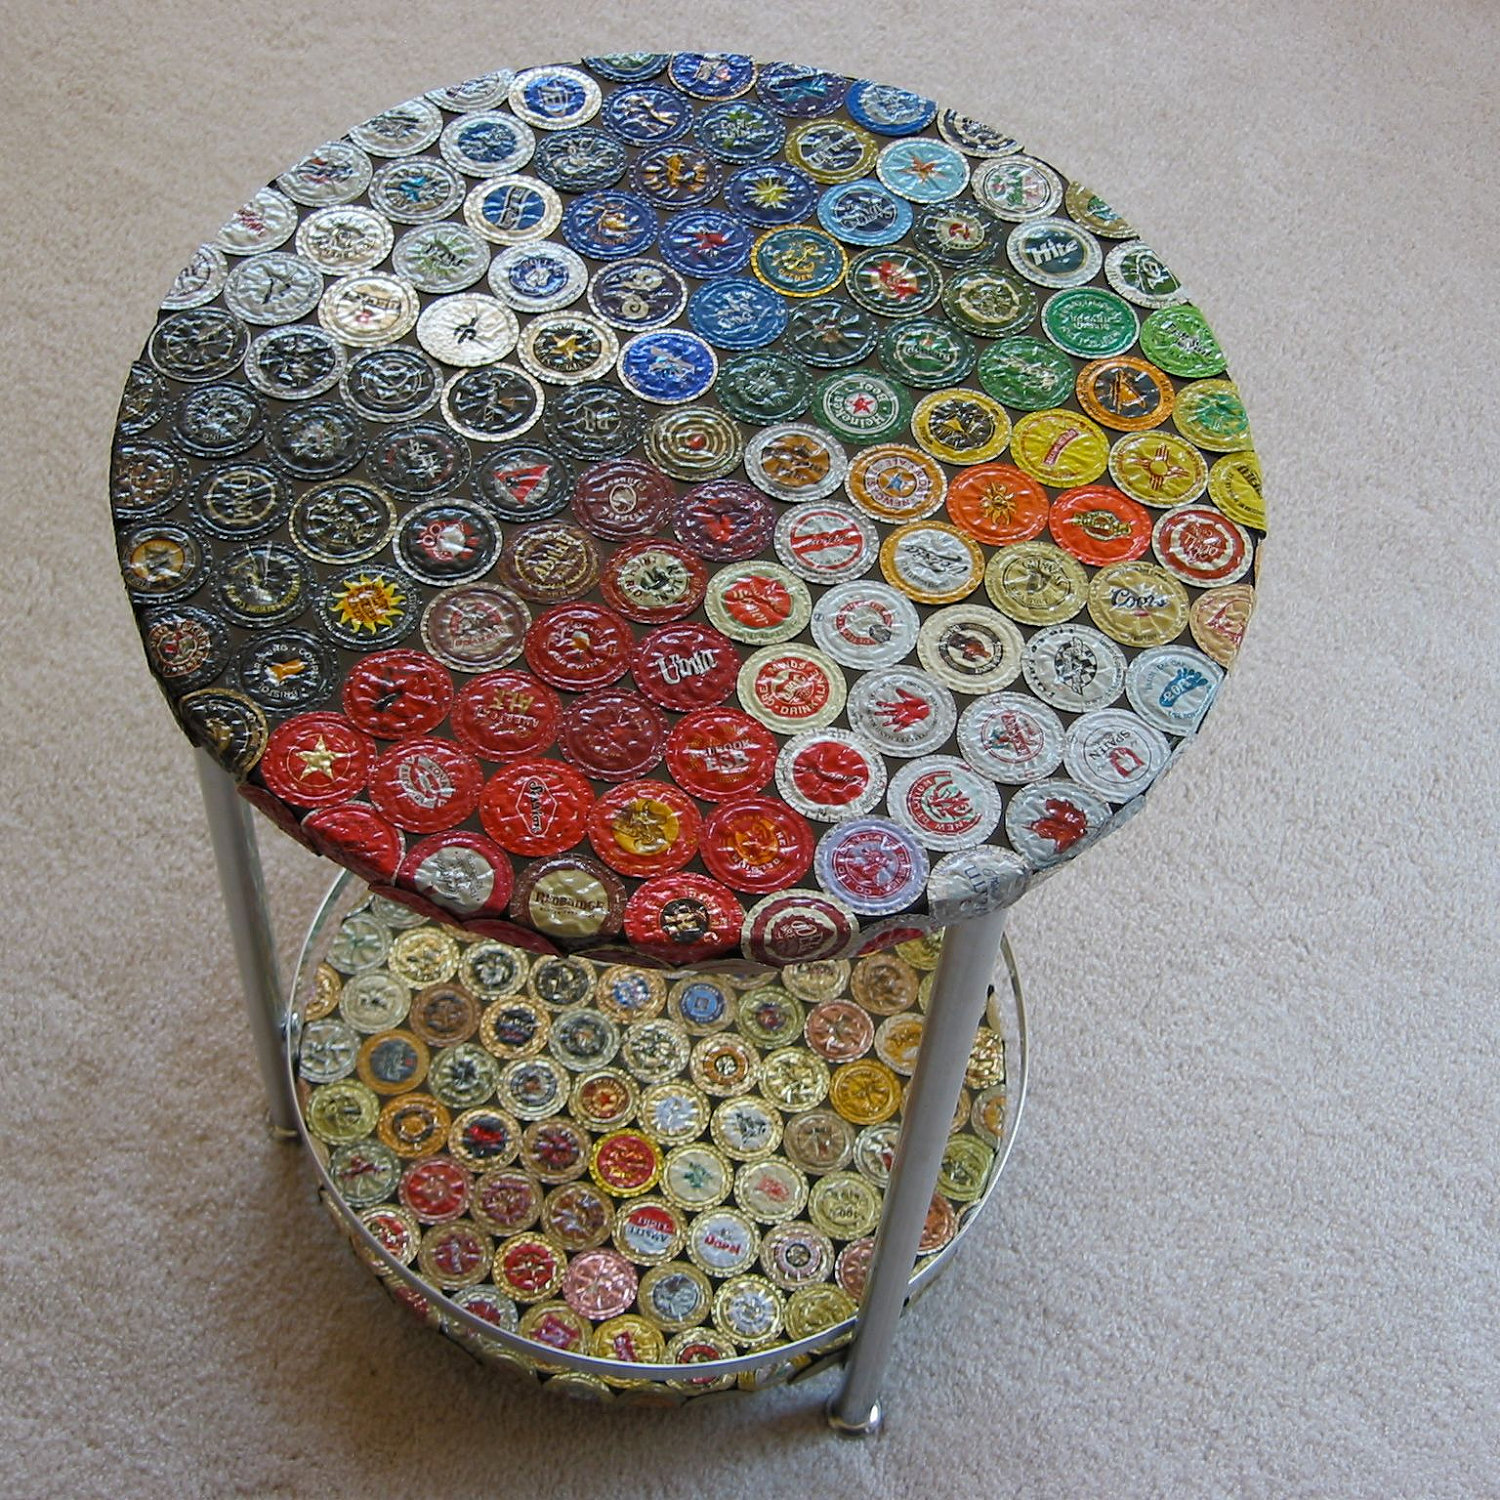 How to recycle bottle cap design on table floor and walls for Creative ideas with bottle caps